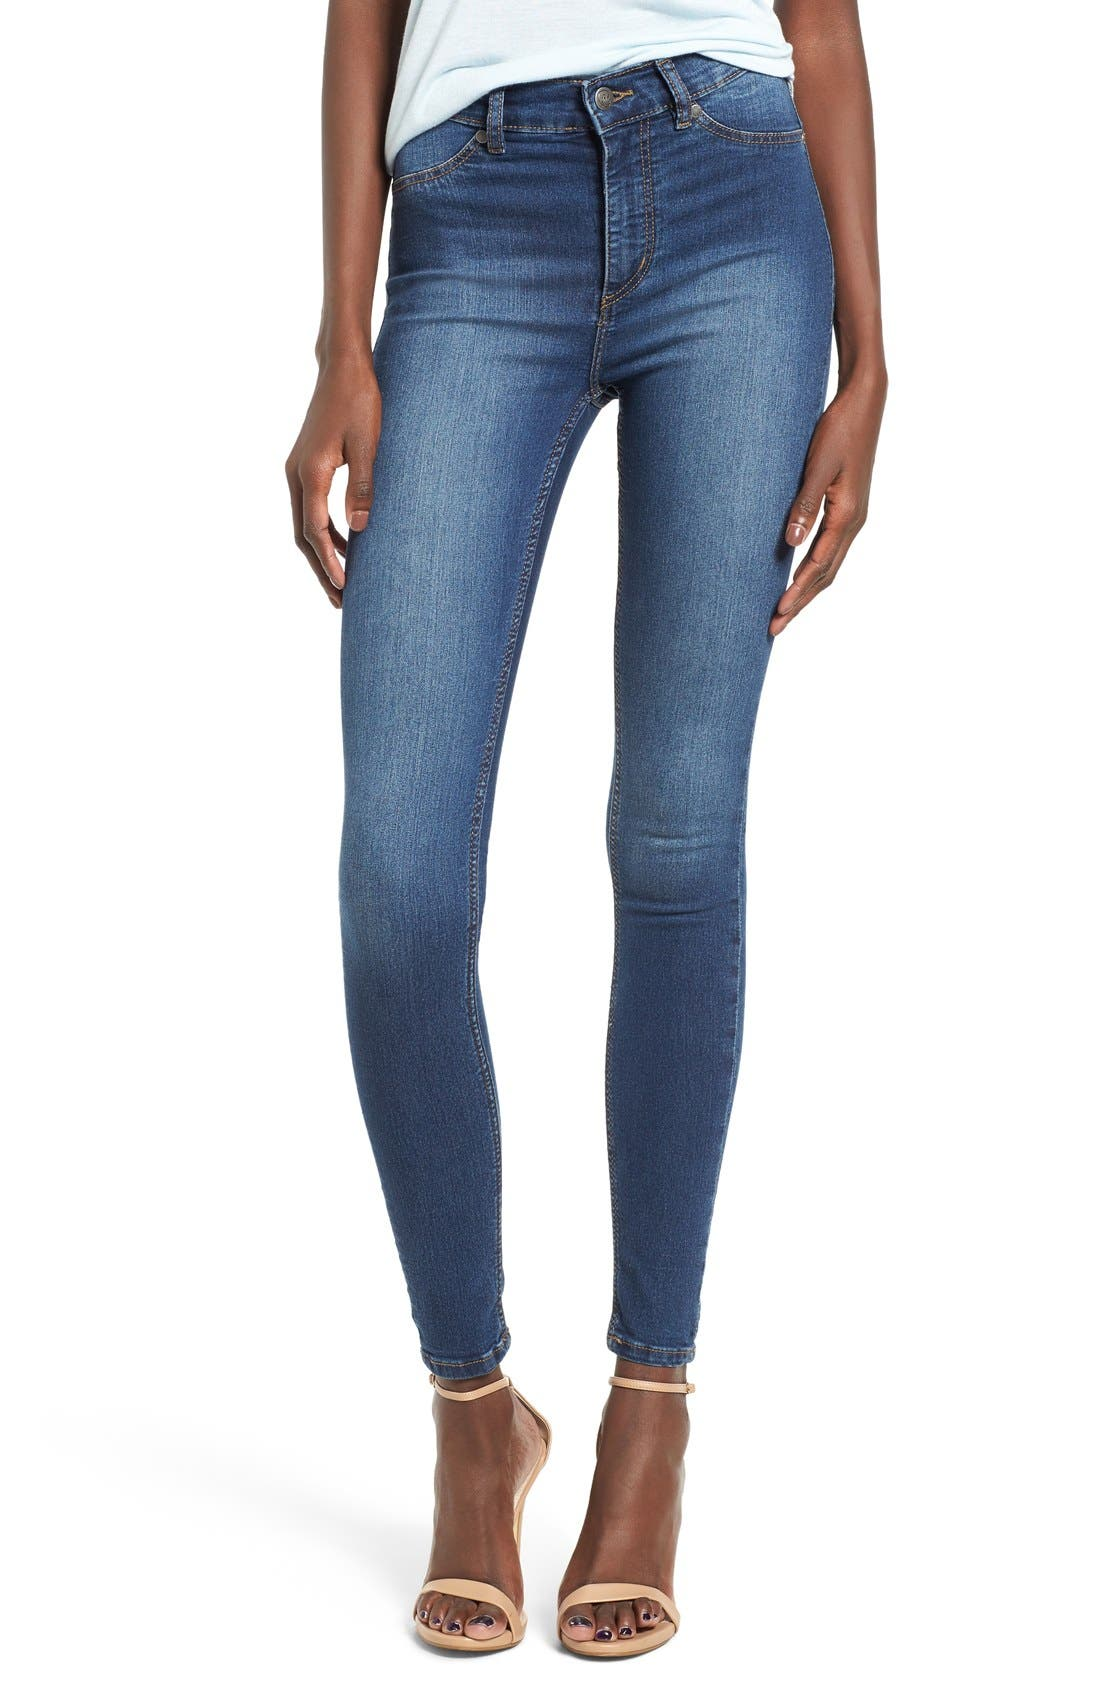 Alternate Image 1 Selected - Cheap Monday High Rise Skinny Jeans (Dim Blue)